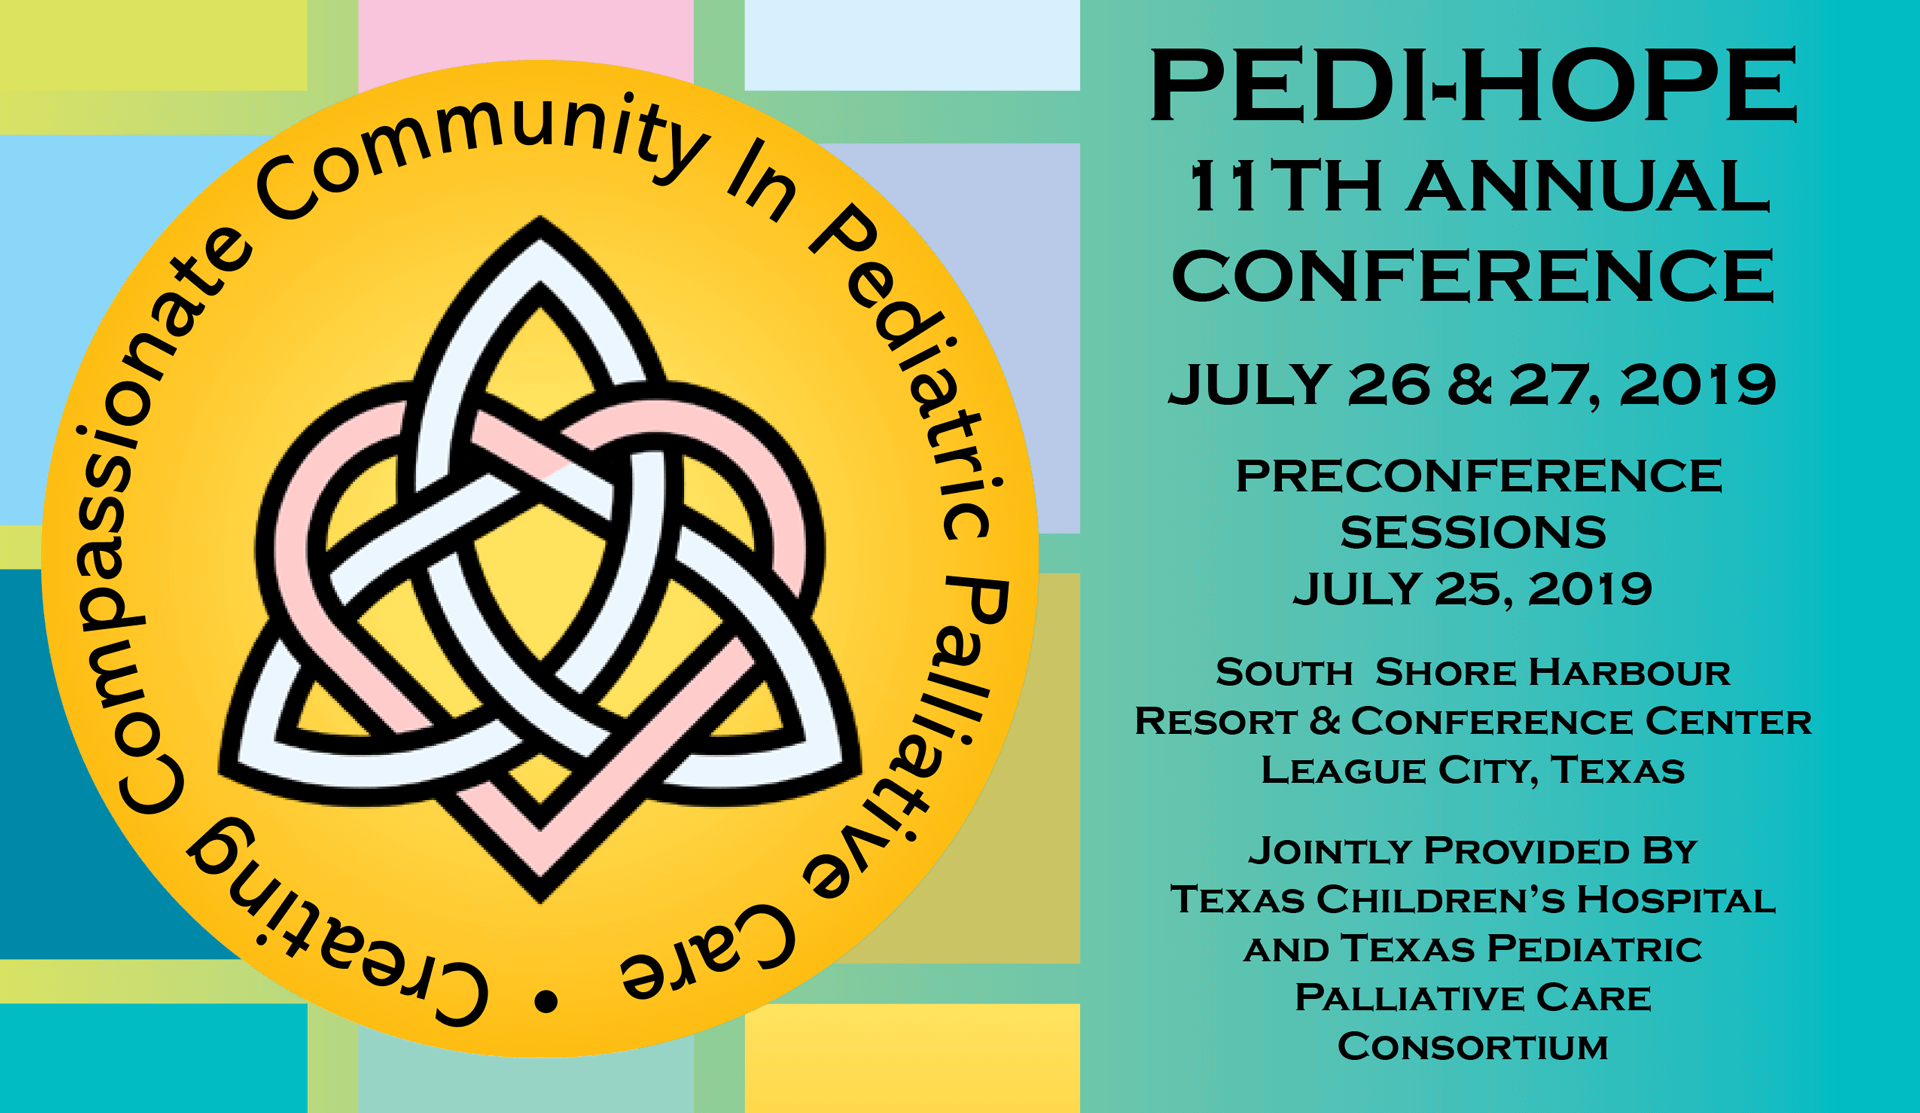 Pediatric Conference Hawaii 2019